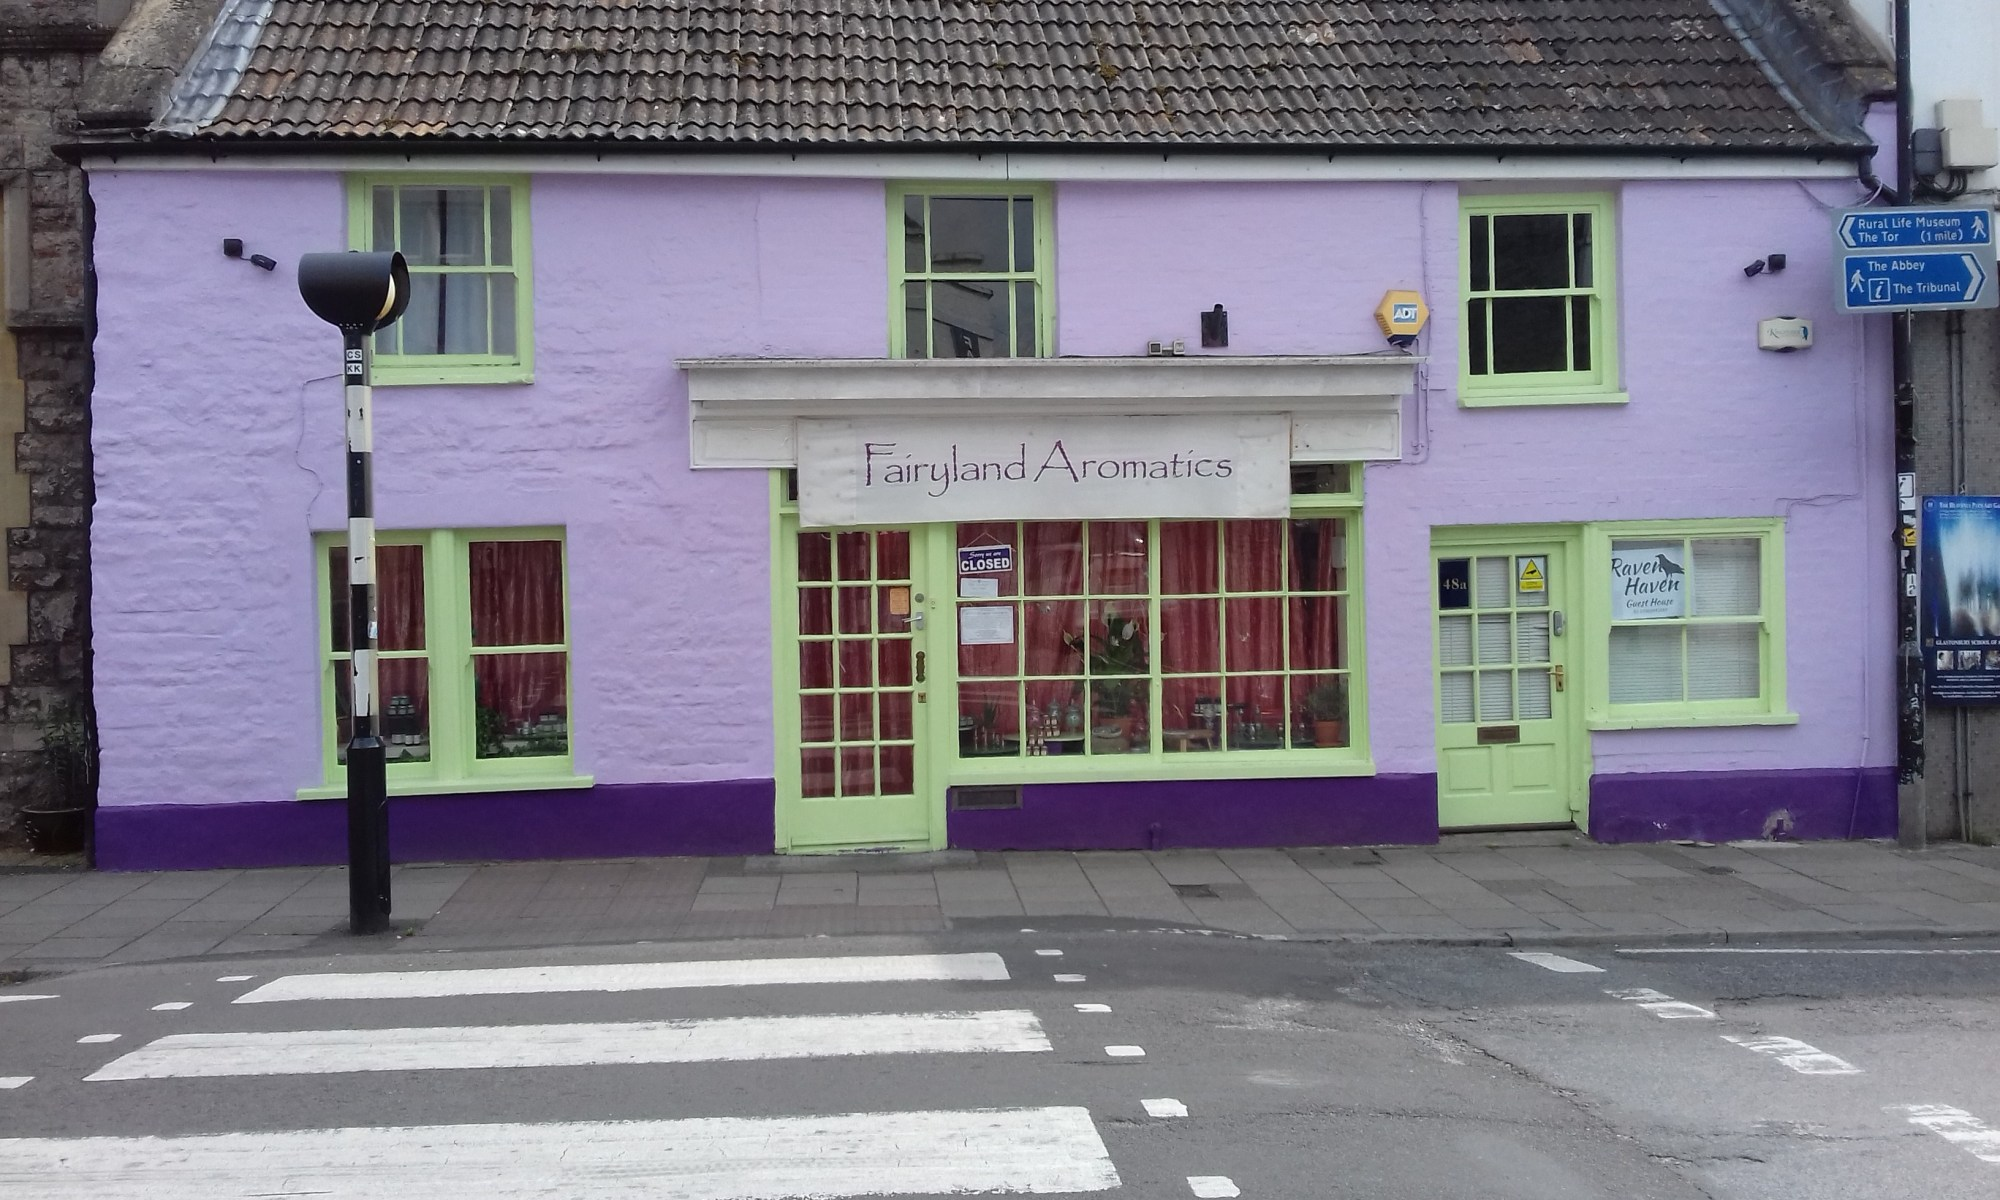 A lilac and yellow shop. Fairyland aromatics which sells essential oils.